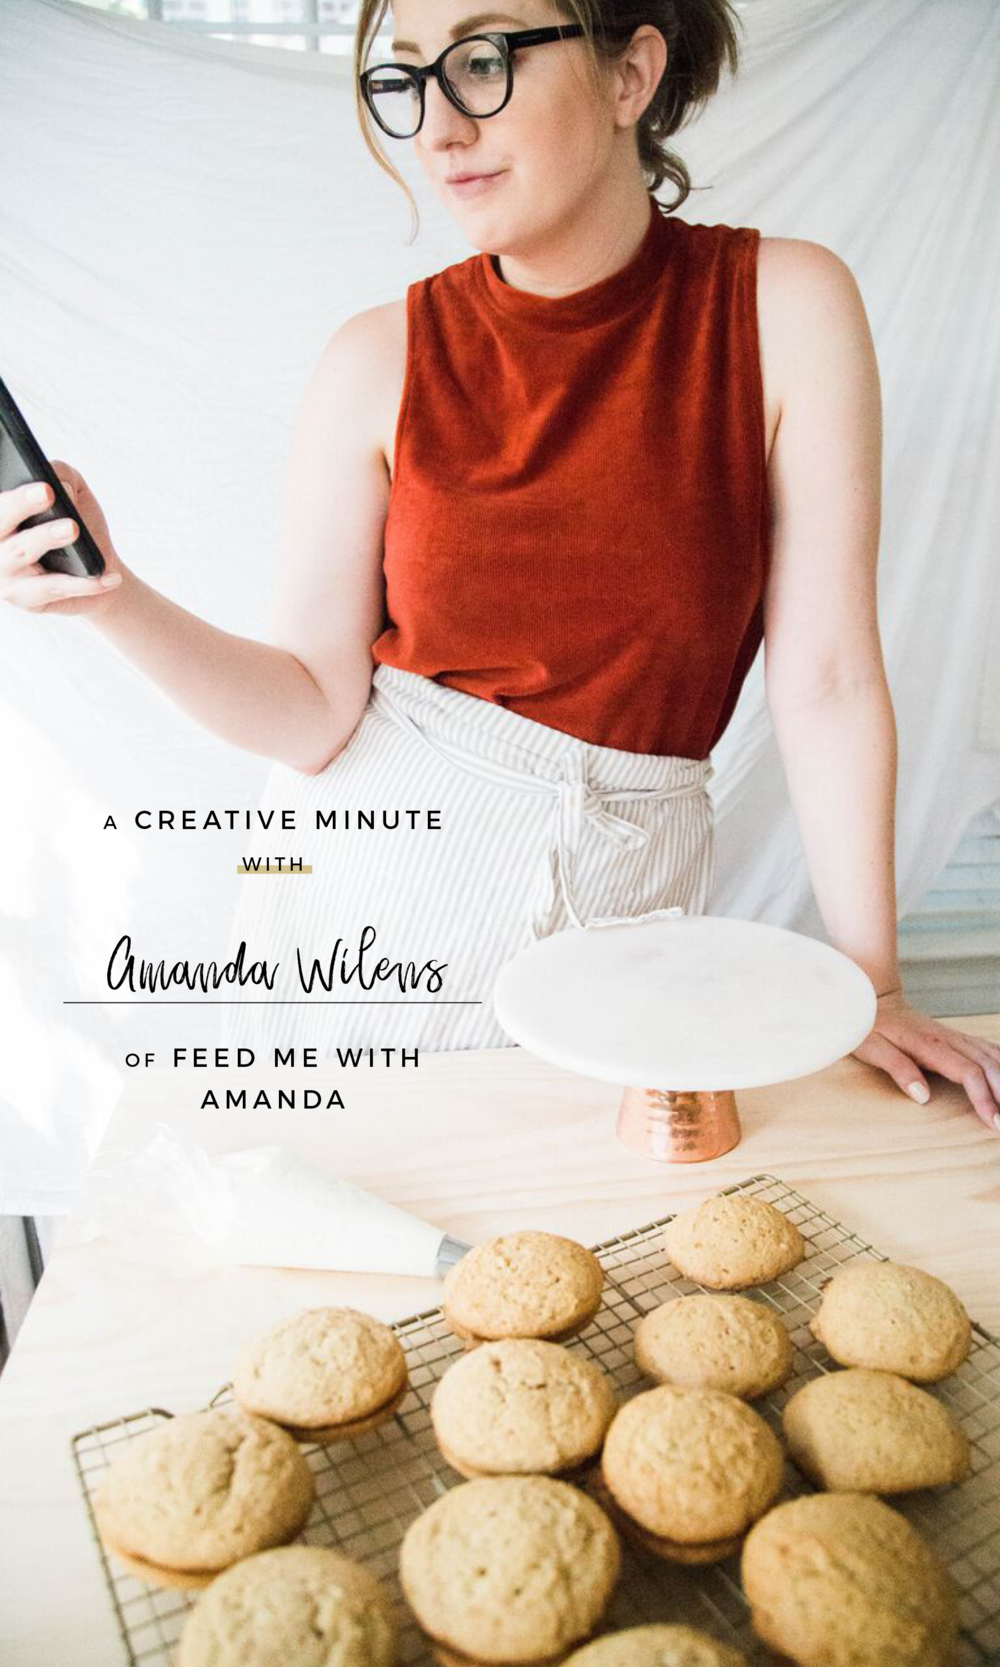 A Creative Minute With... Amanda Wilens of Feed Me With Amanda